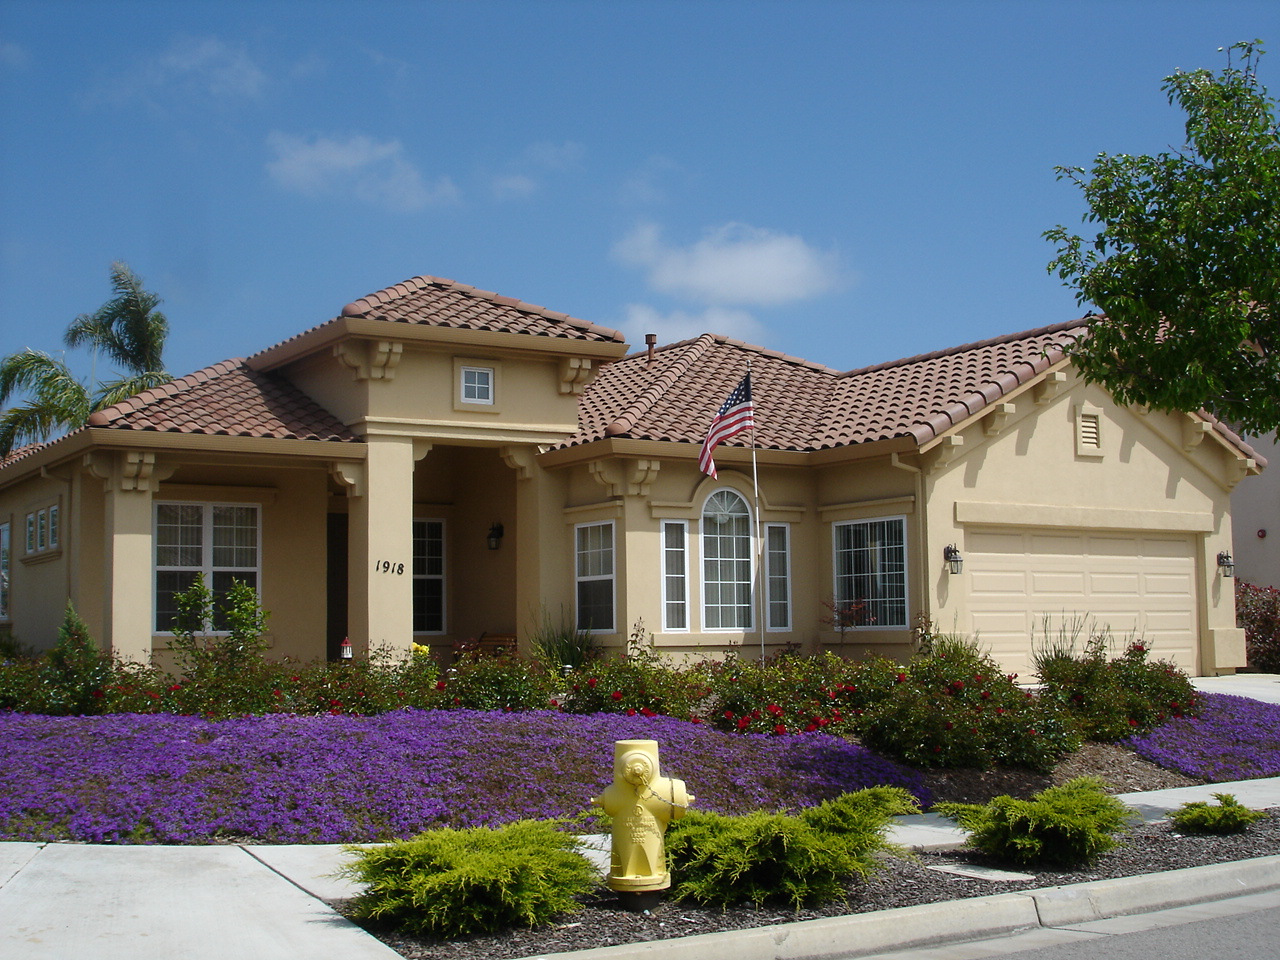 File ranch style home in salinas california jpg for Home style descriptions